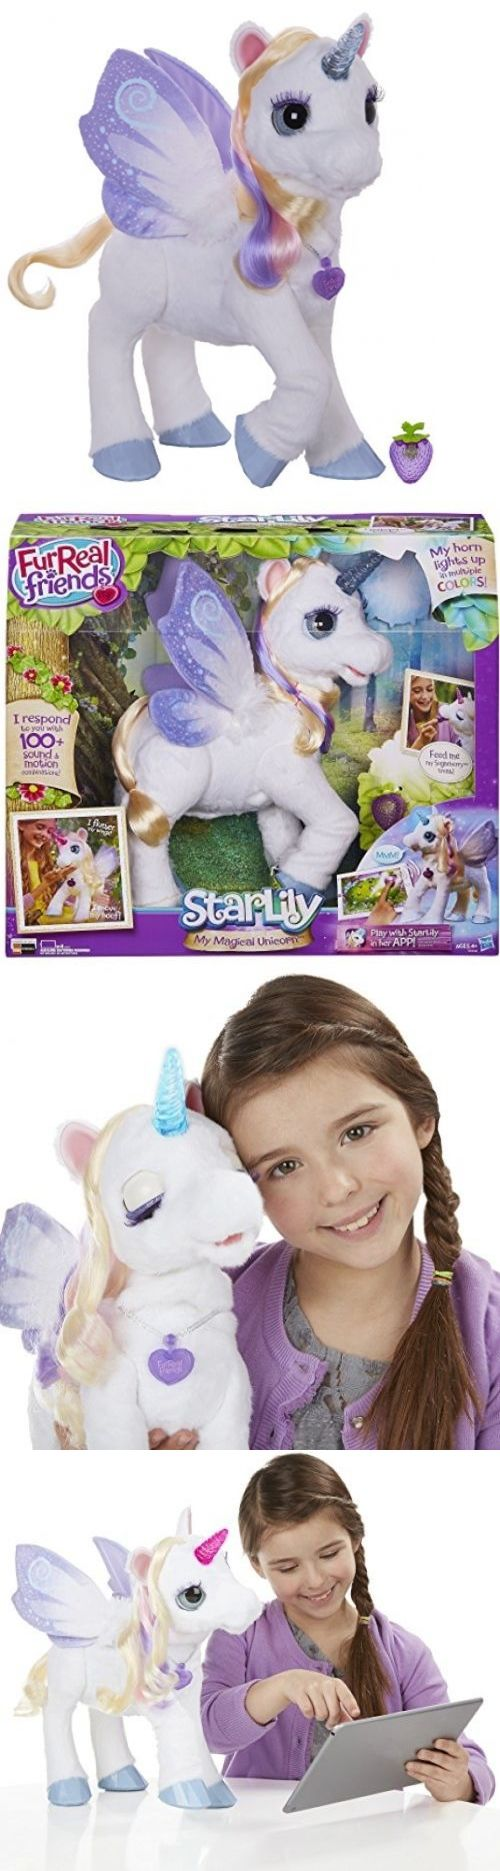 FurReal Friends 38288: Furreal Friends Starlily, My Magical Unicorn - New, Fast Shipping -> BUY IT NOW ONLY: $119.39 on eBay!